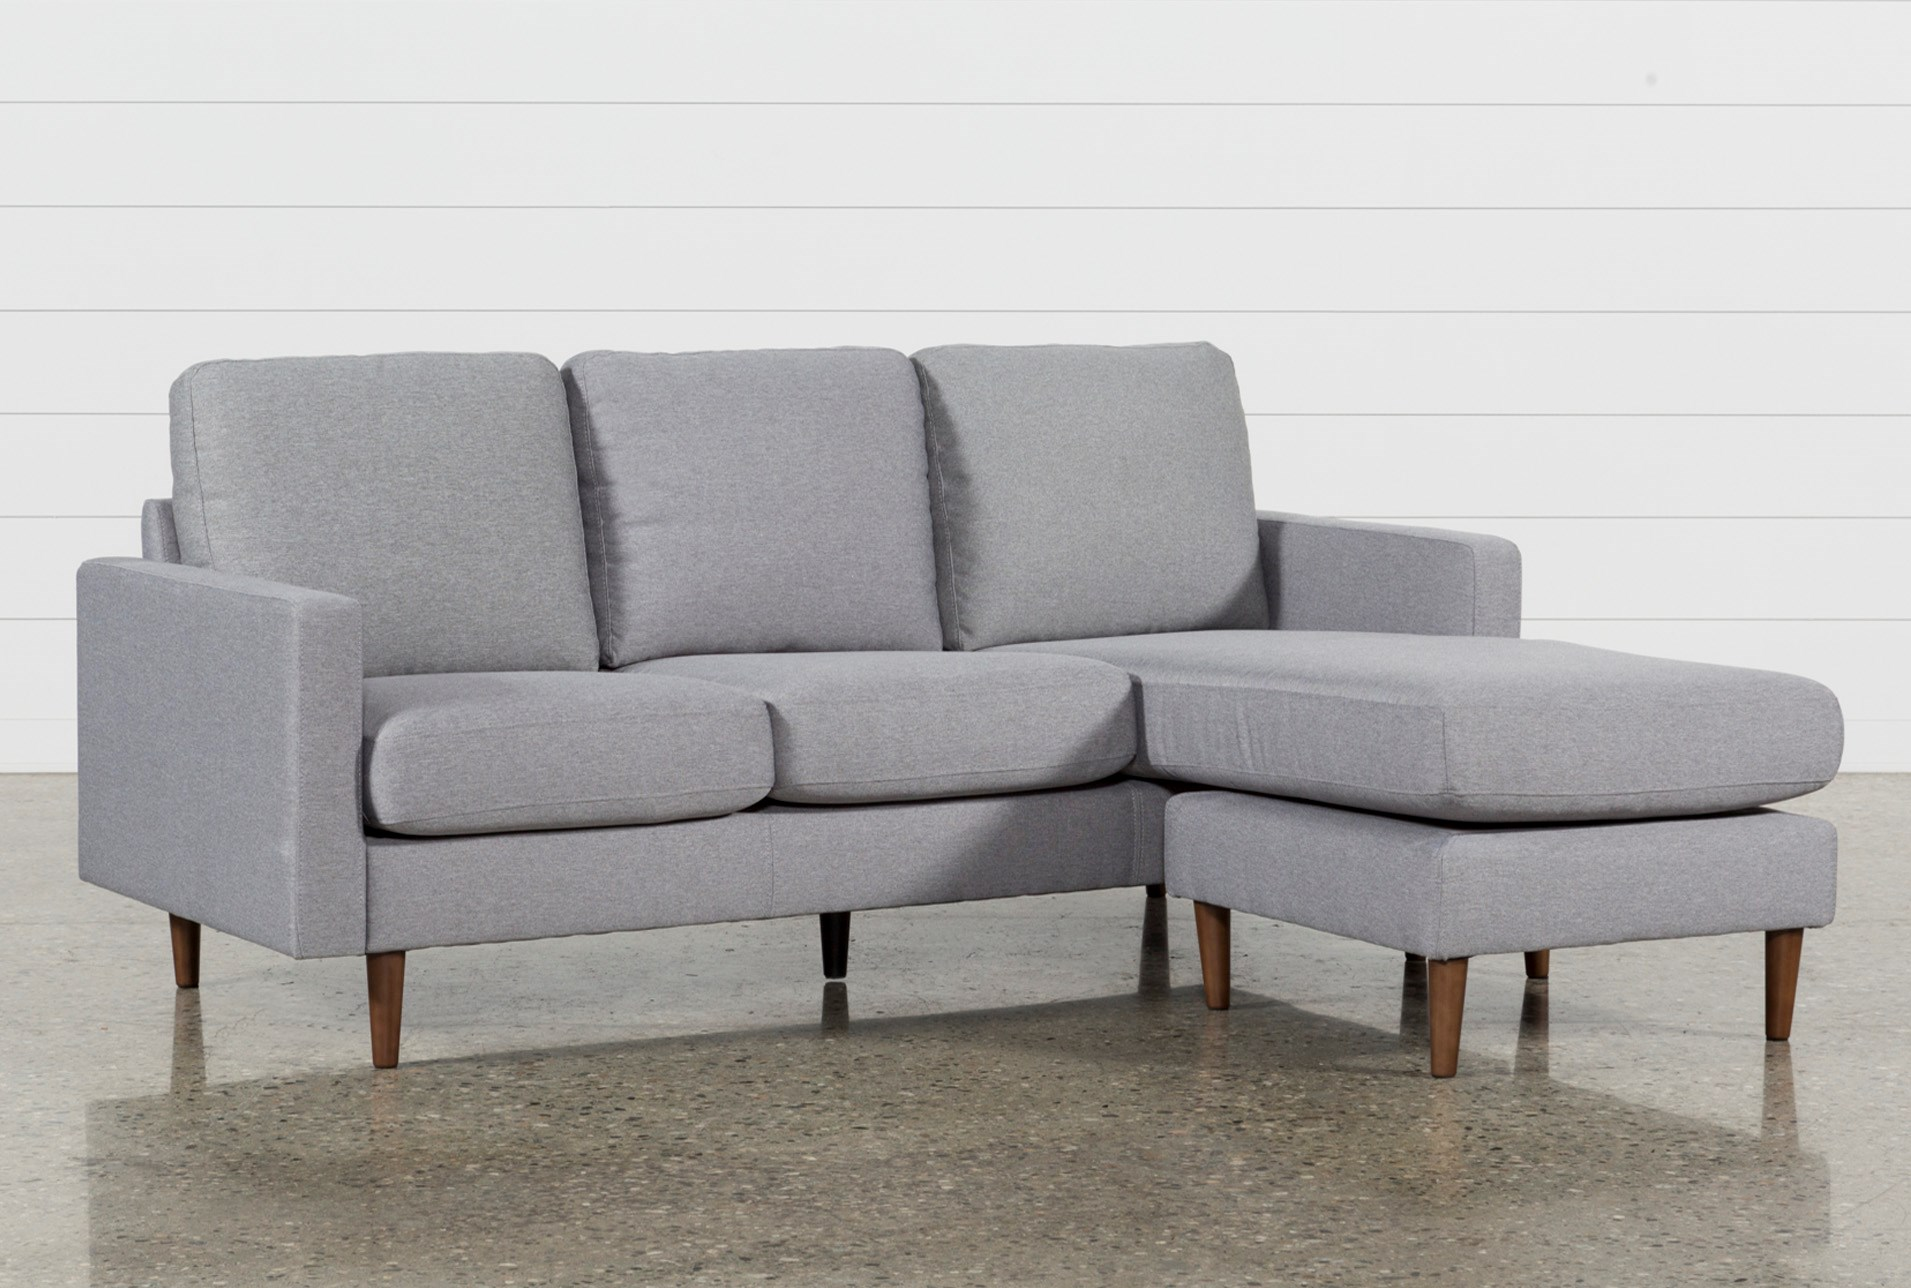 chaise with sectional sofa couch explore foter gray